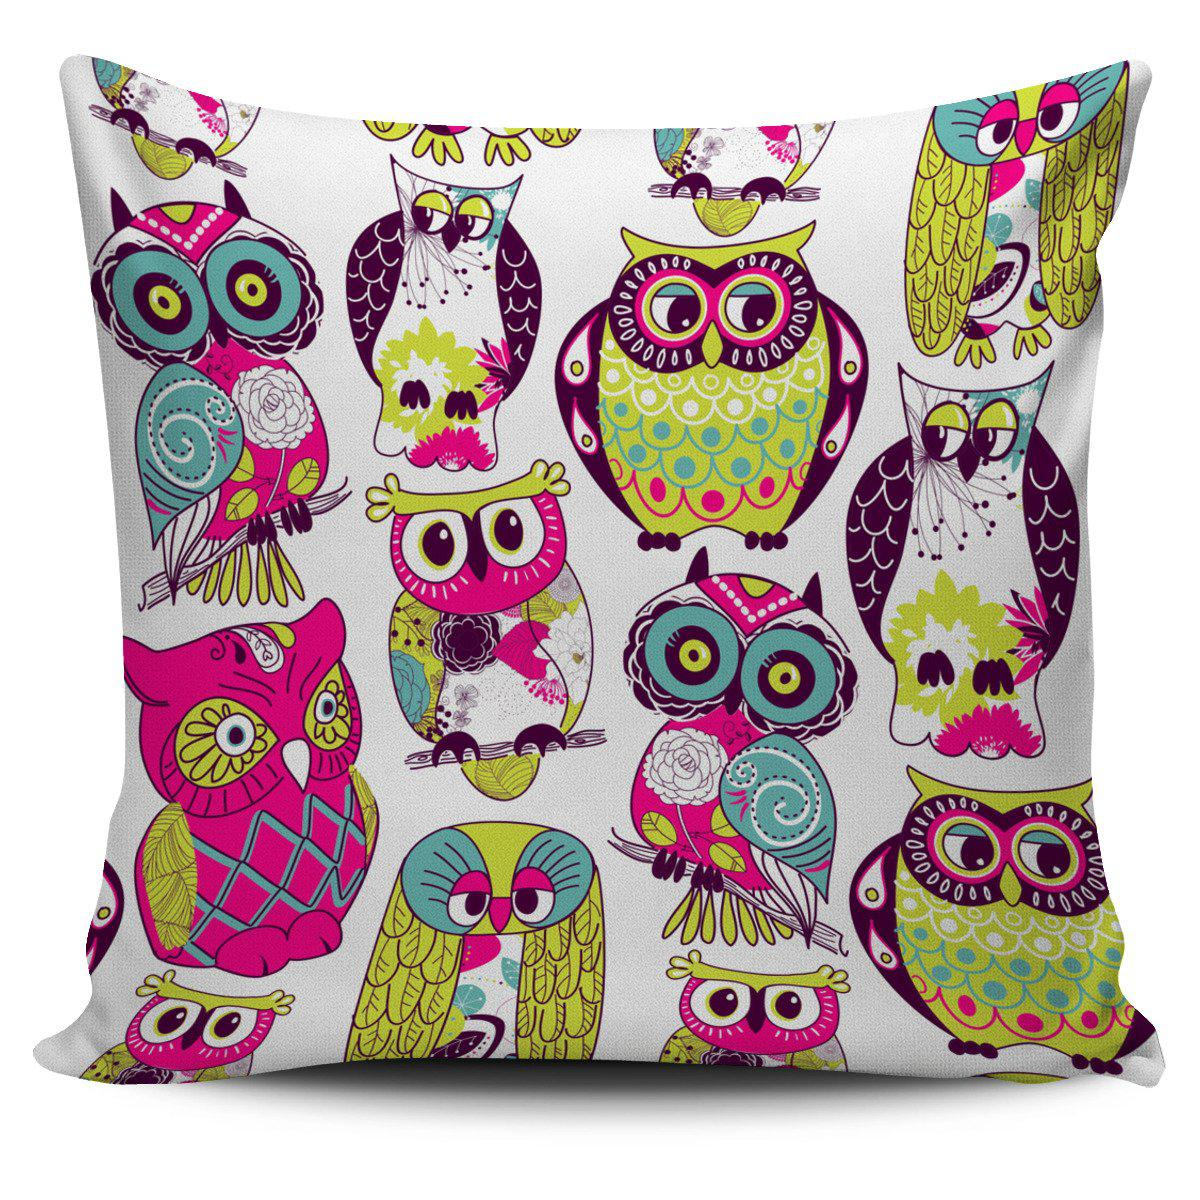 Shopeholic:Pillow Cover Owls Multi color